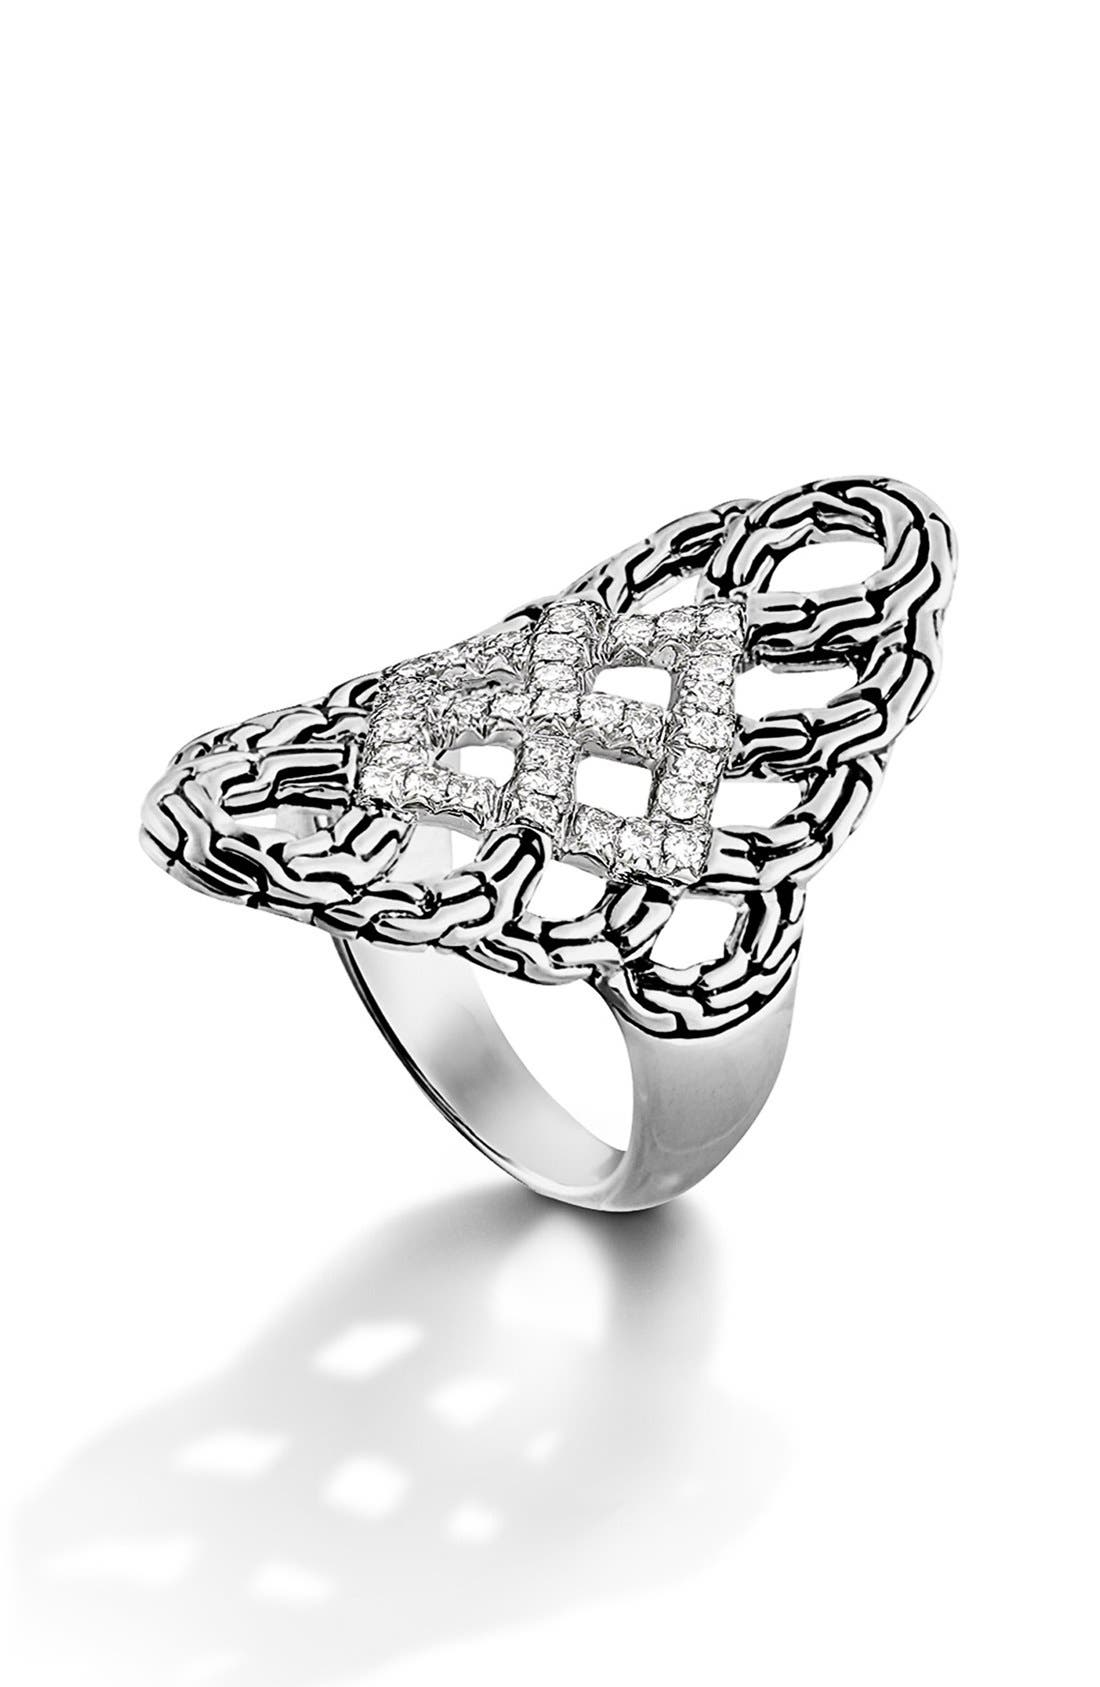 Main Image - John Hardy 'Classic Chain' Diamond Saddle Ring